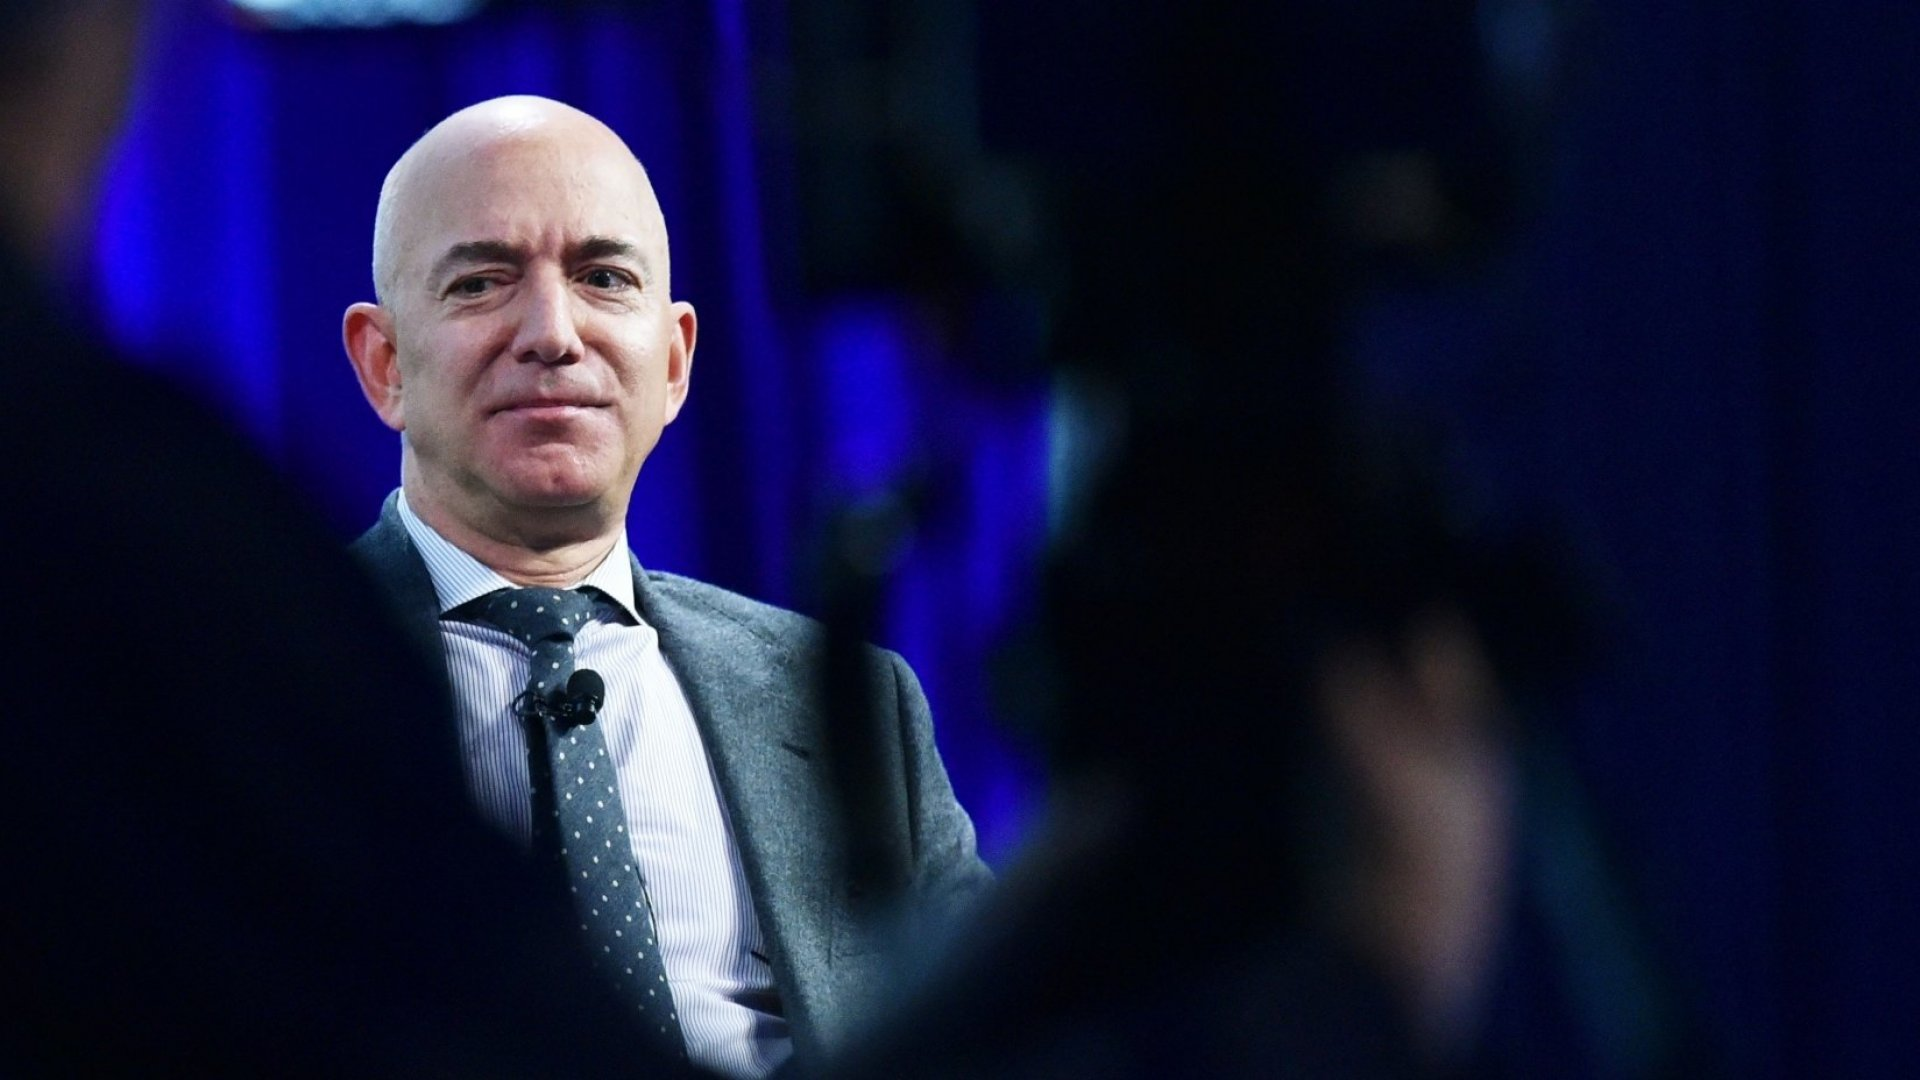 Jeff Bezos Says There Isn't Enough Testing to Get Back to Normal